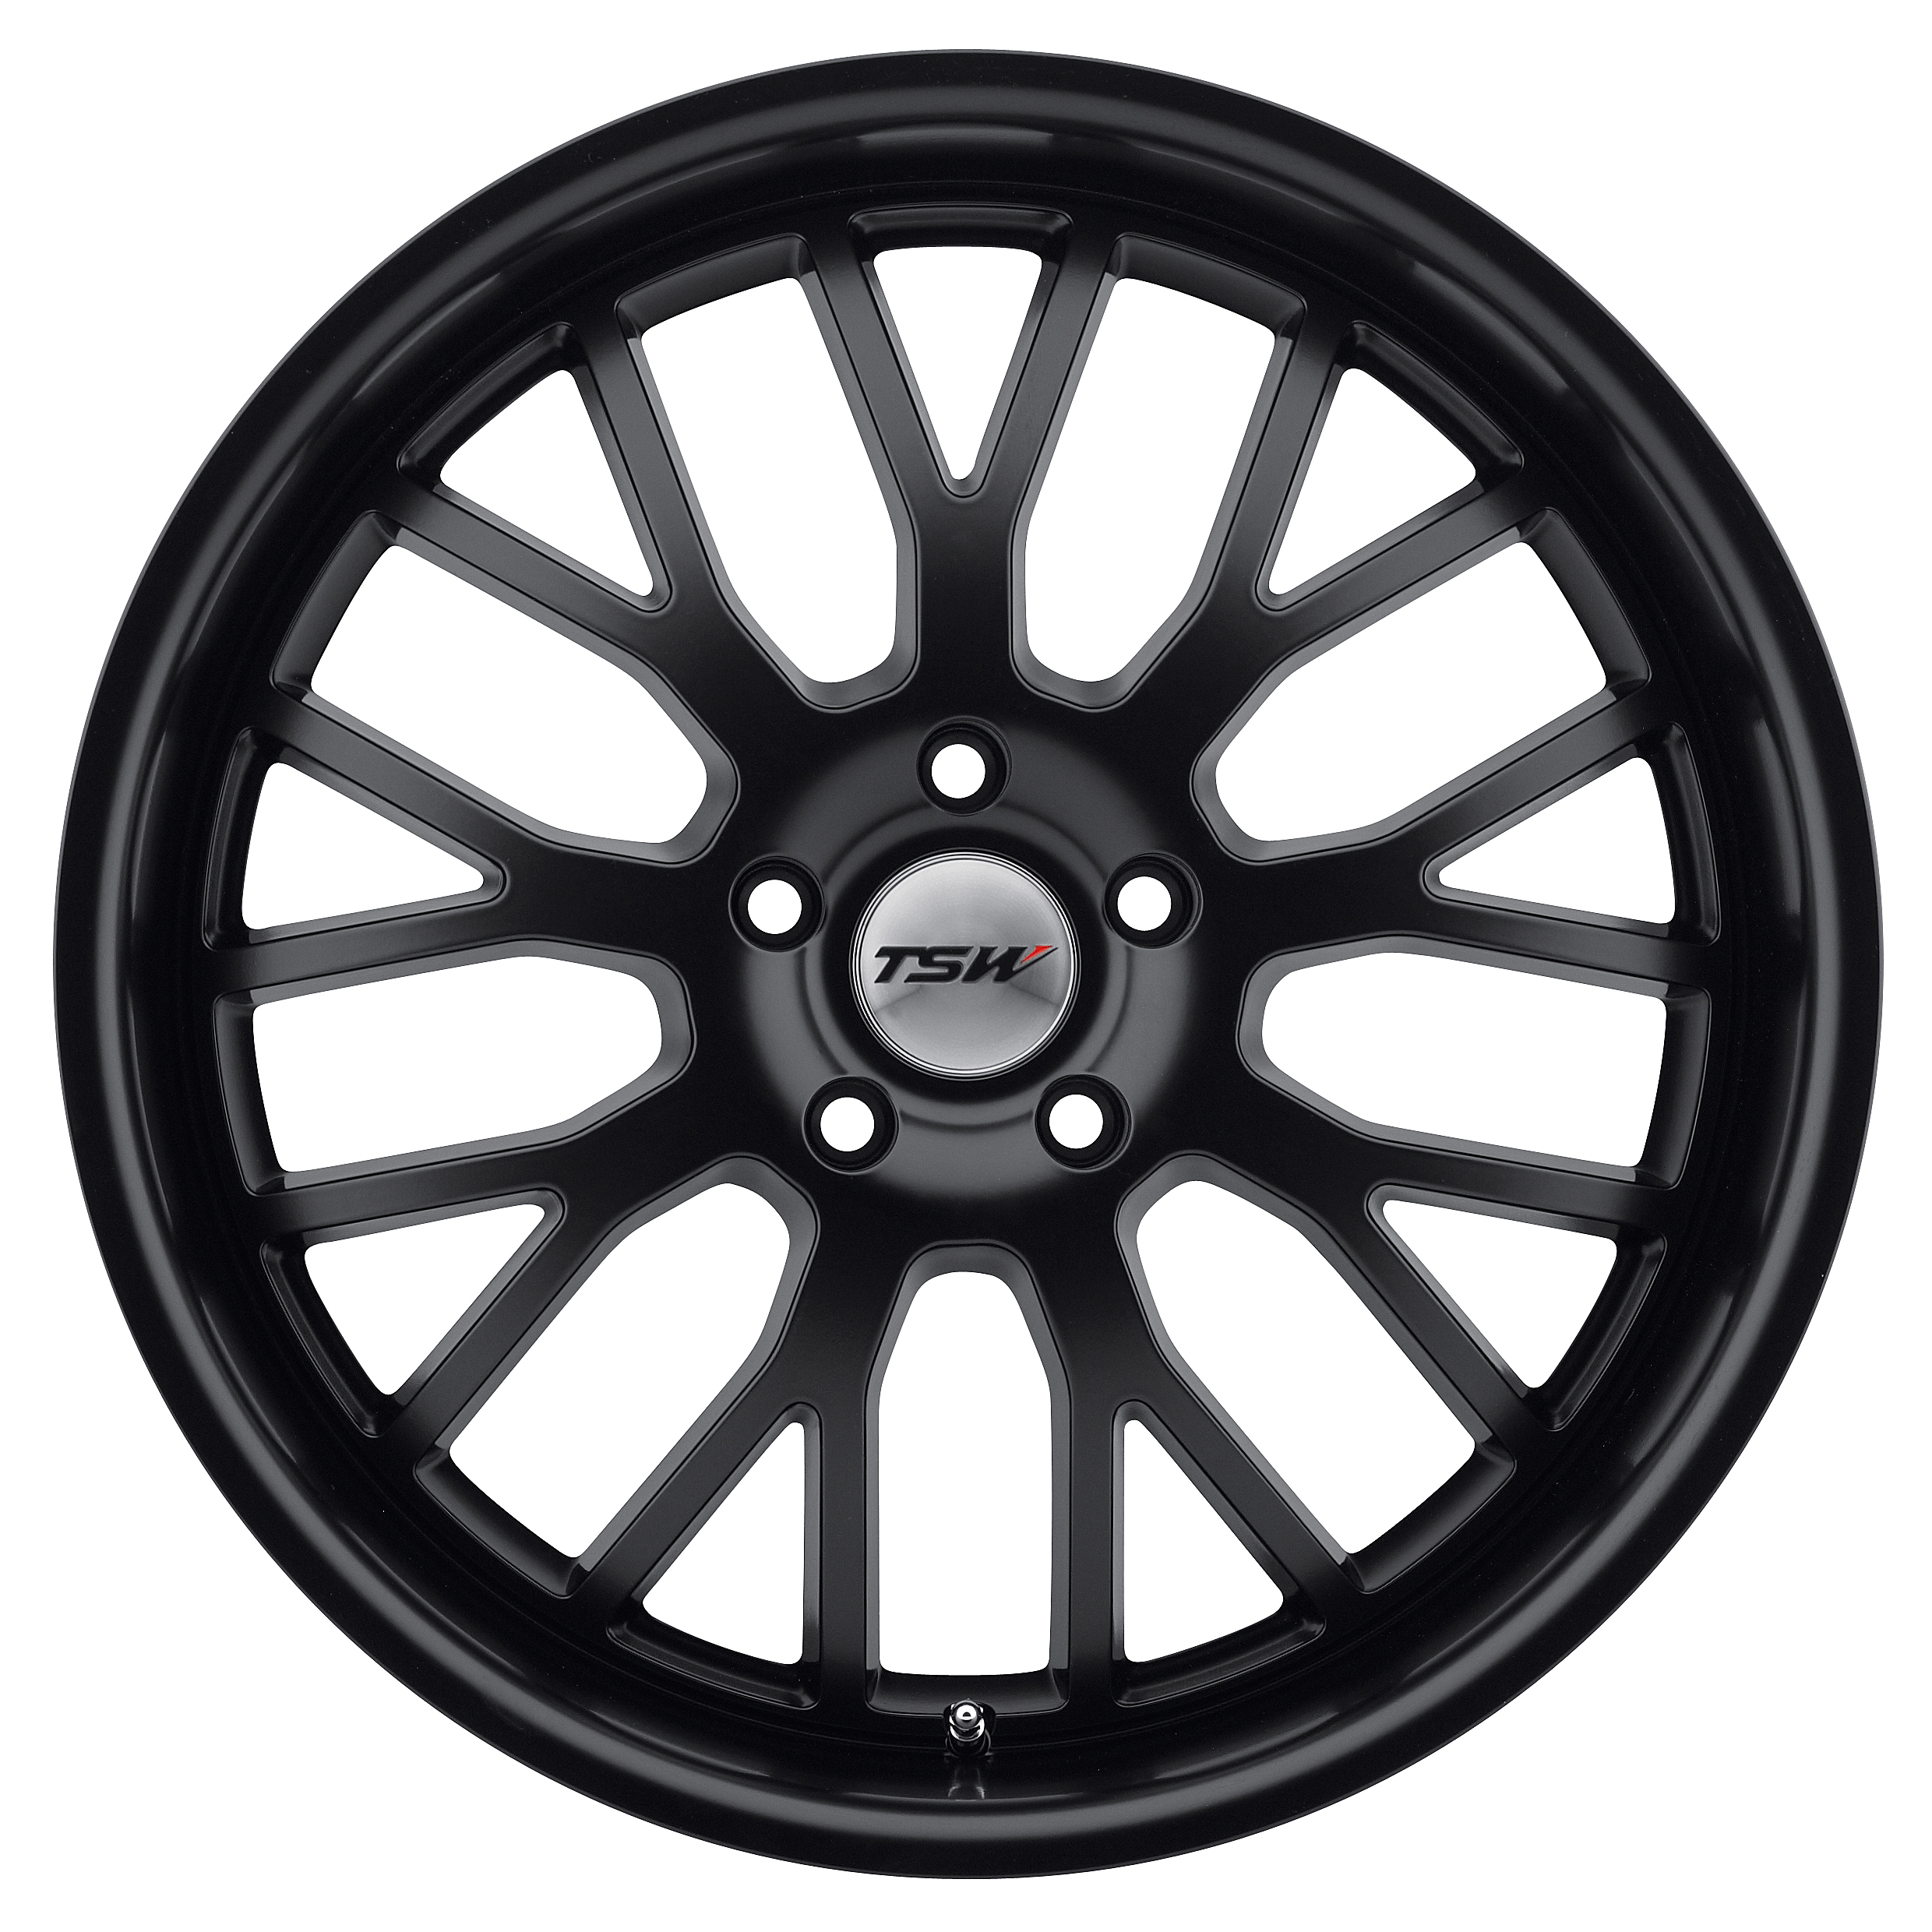 TSW Tremblant Wheel with Matte Black Finish 20 x 10. inches //5 x 120 mm, 25 mm Offset